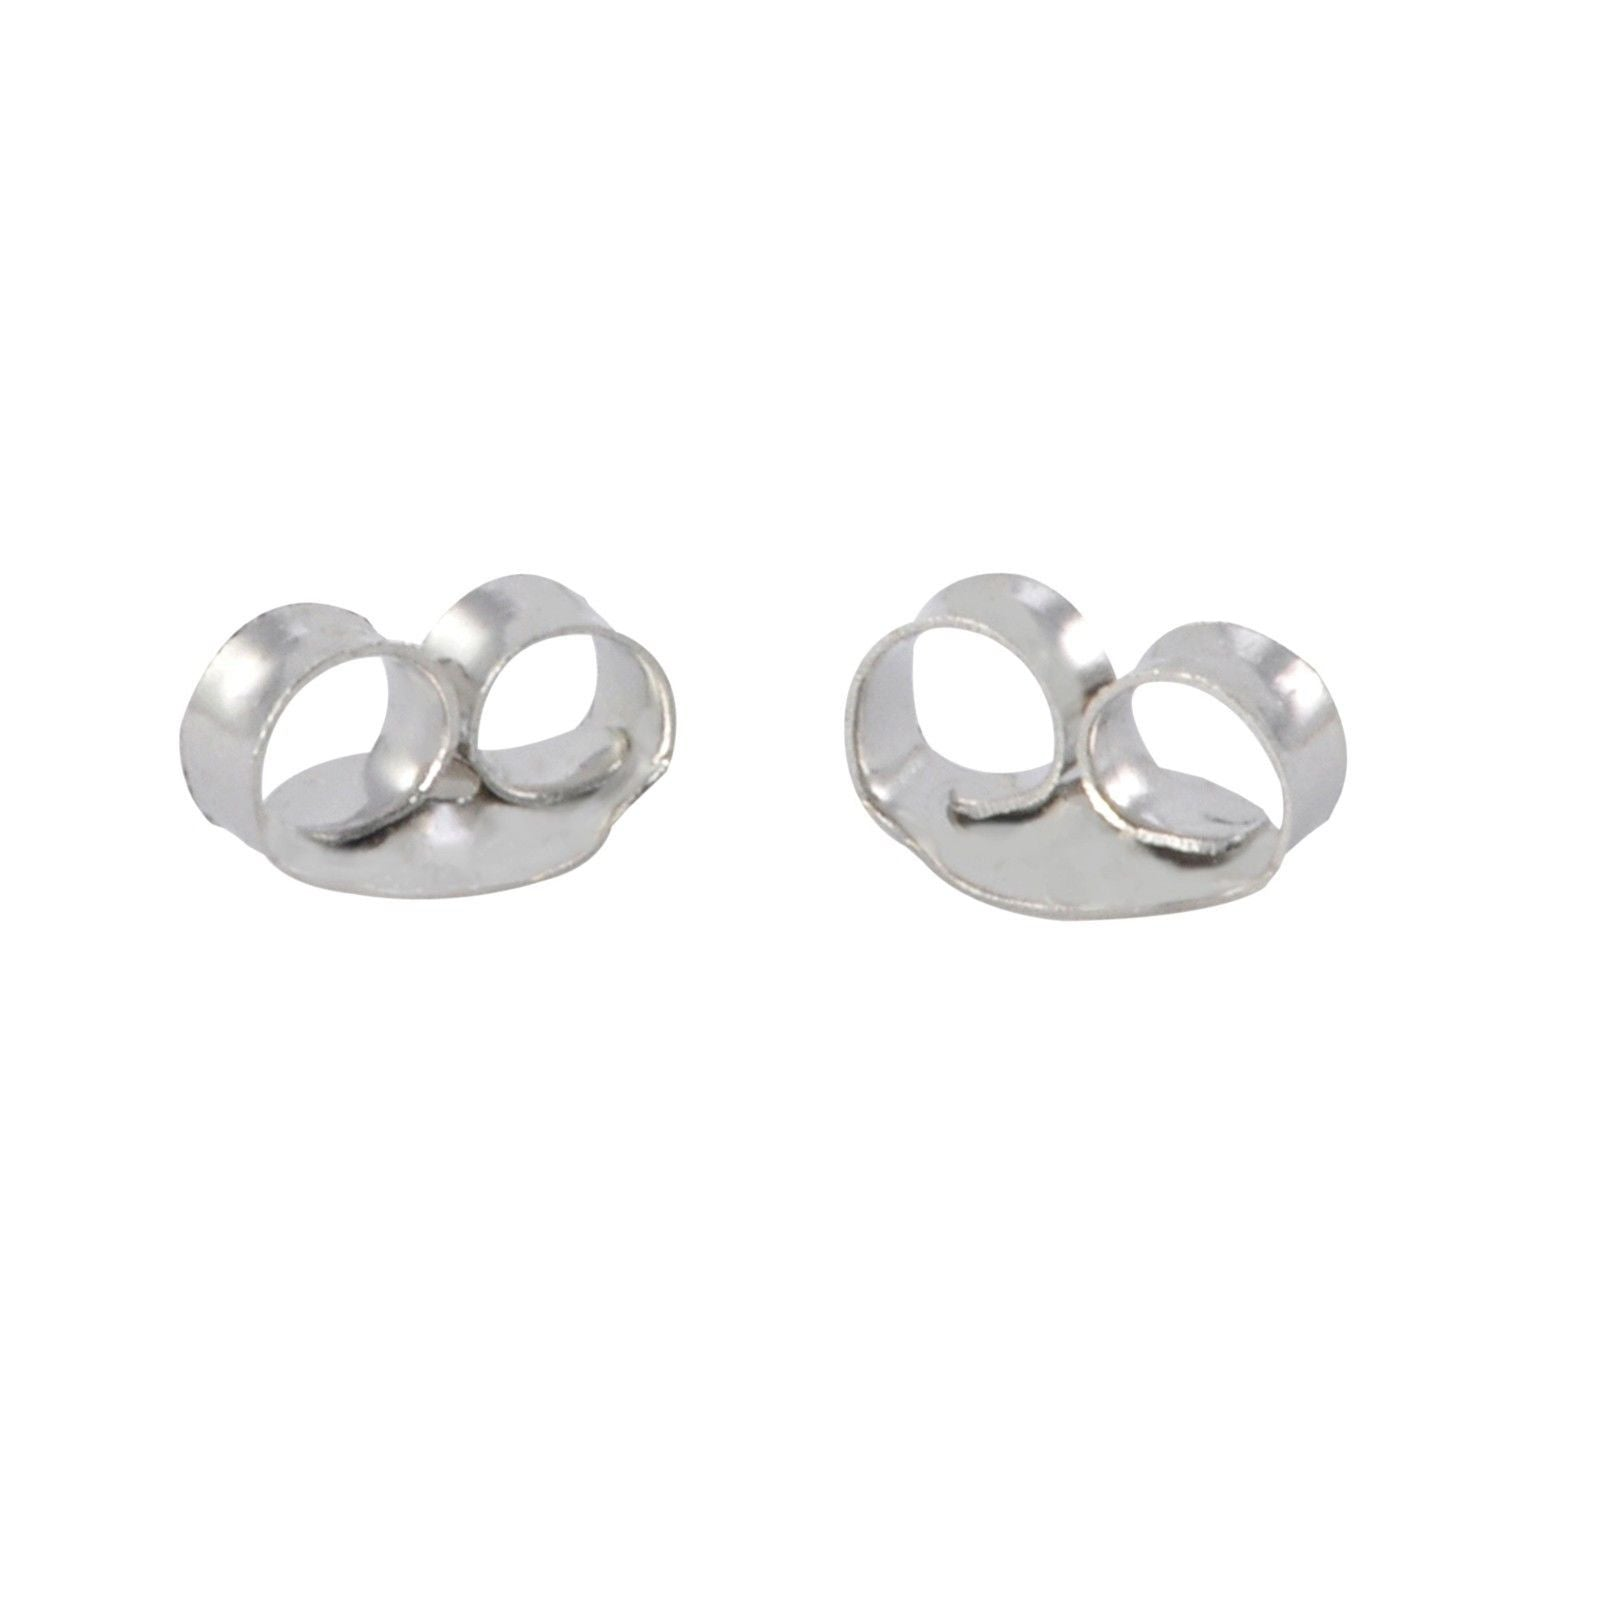 1e39689d8 14k White Gold Replacement Butterfly Earring Backs | Jewelryland.com